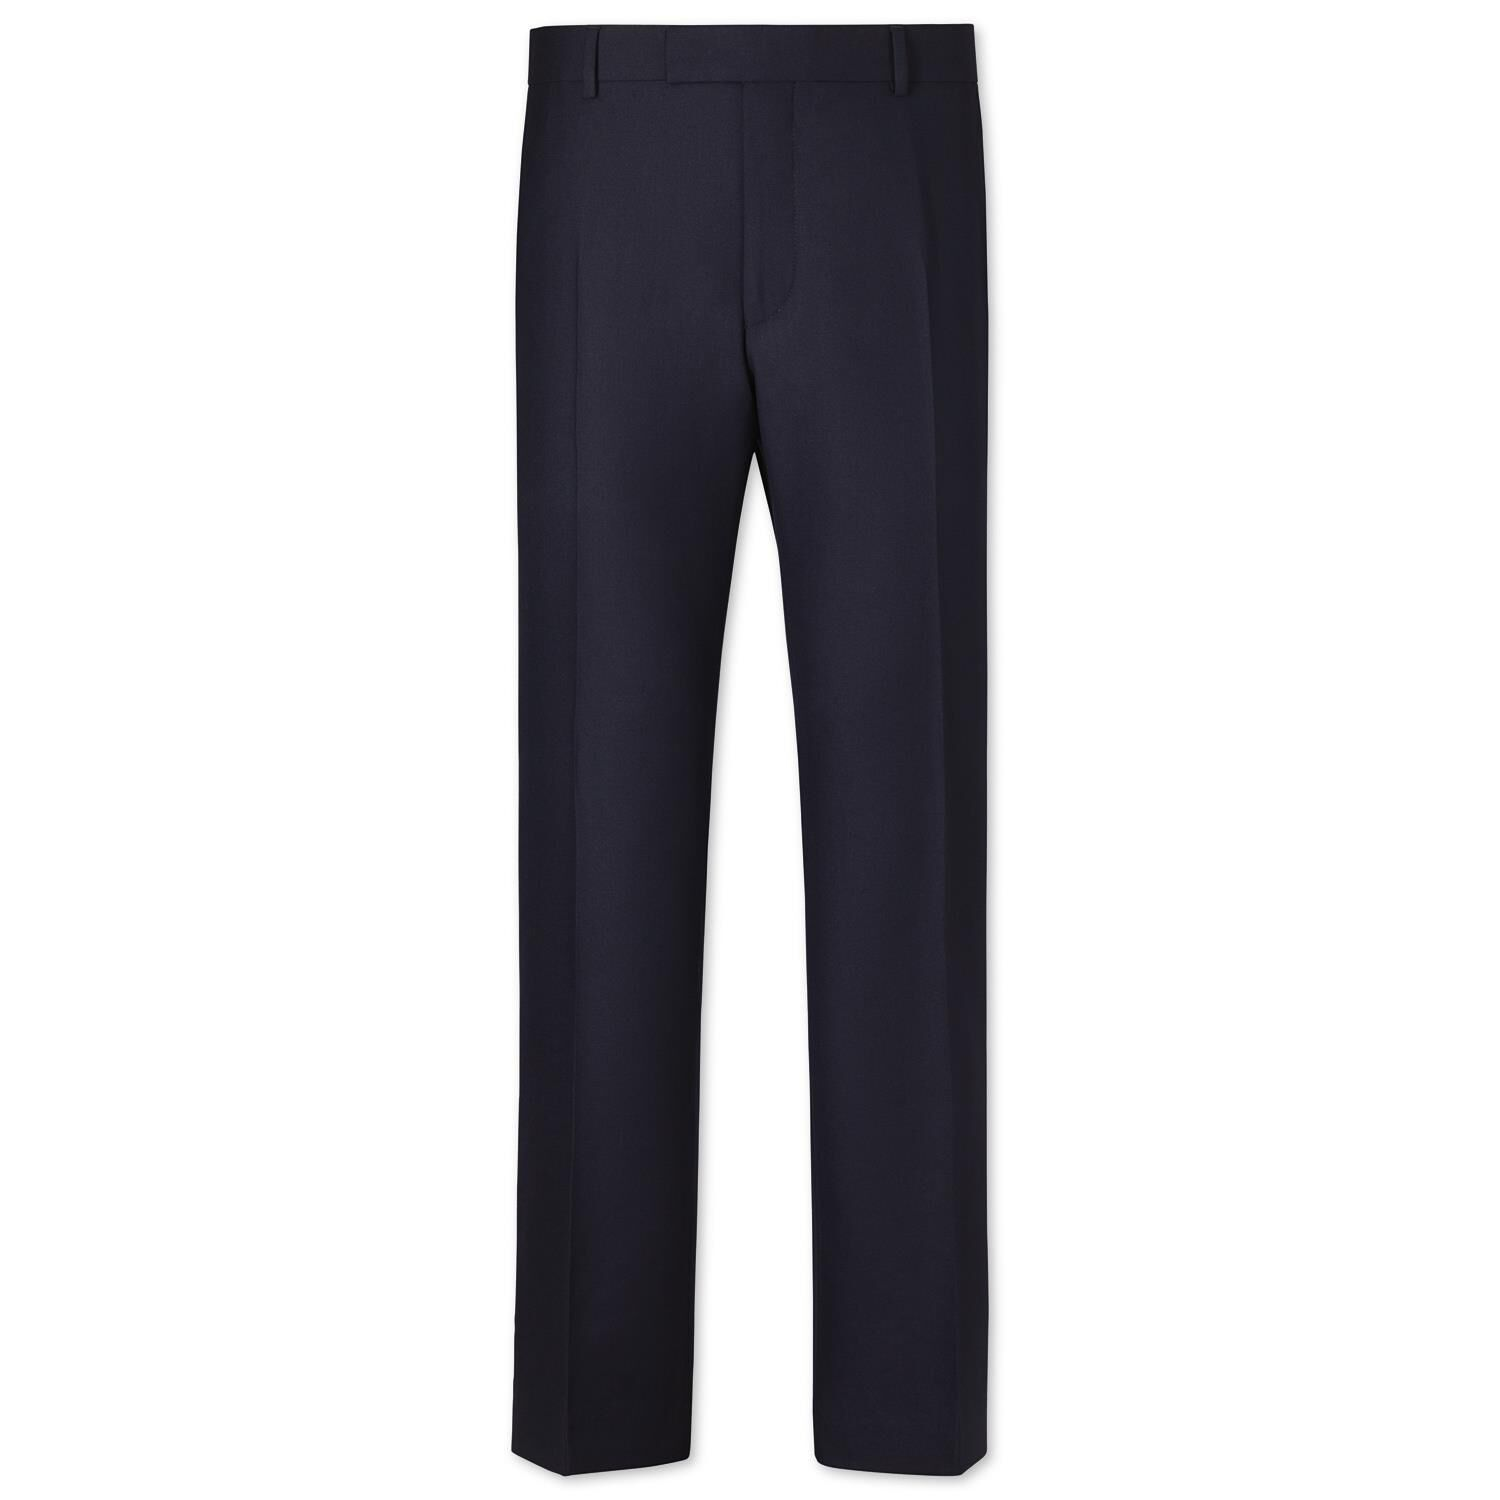 Navy Slim Fit British Hopsack Luxury Suit Trousers Size W38 L38 by Charles Tyrwhitt